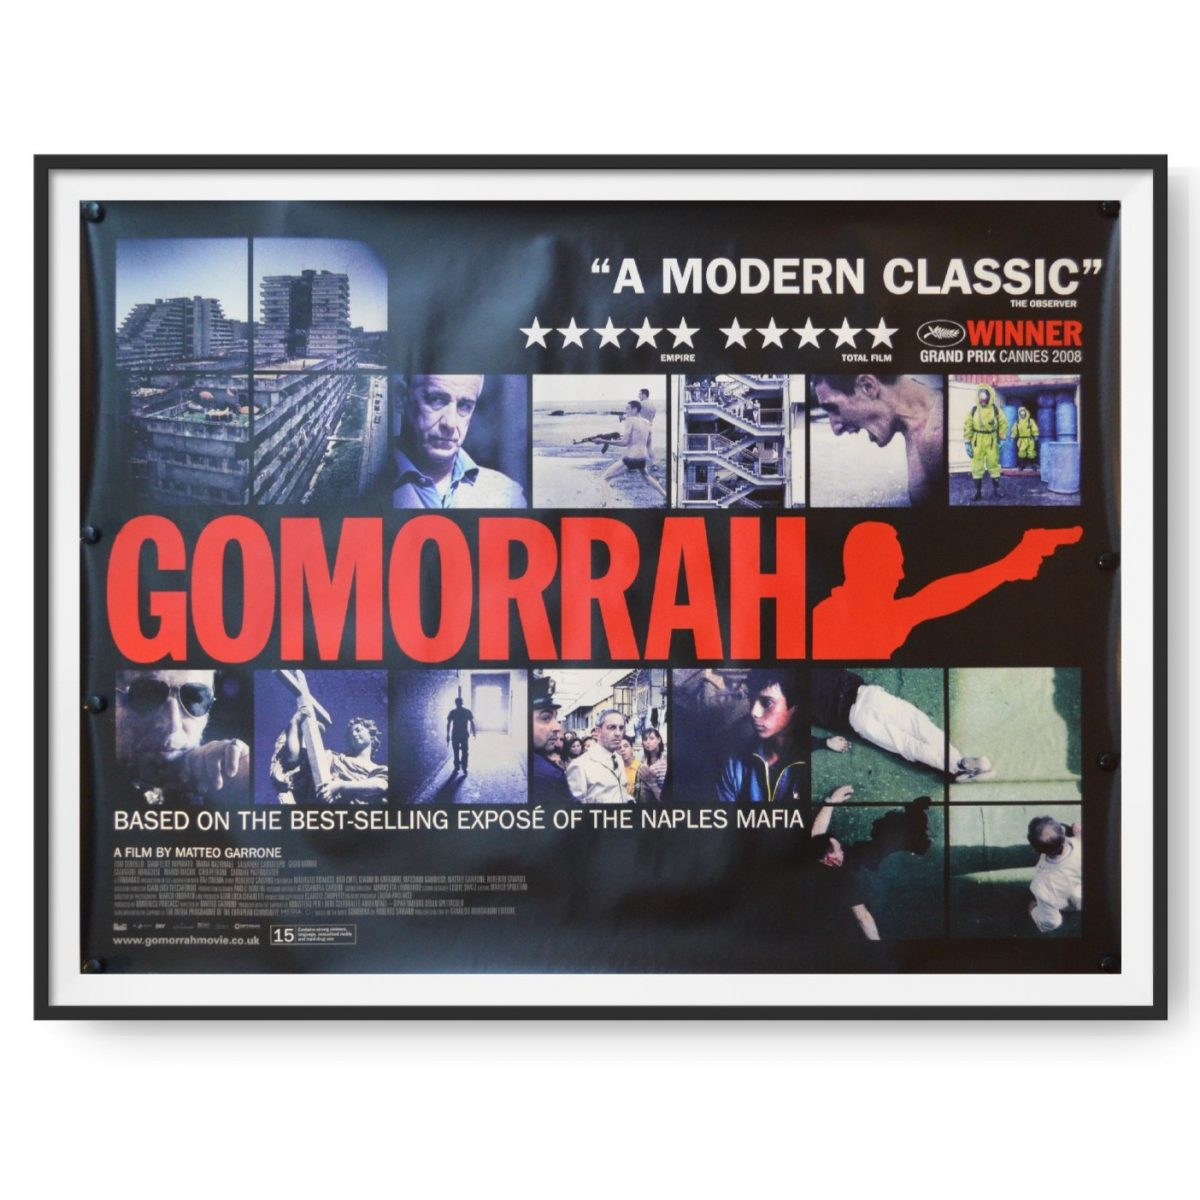 This poster features the word 'Gomorrah' in red letters and features images from the film.